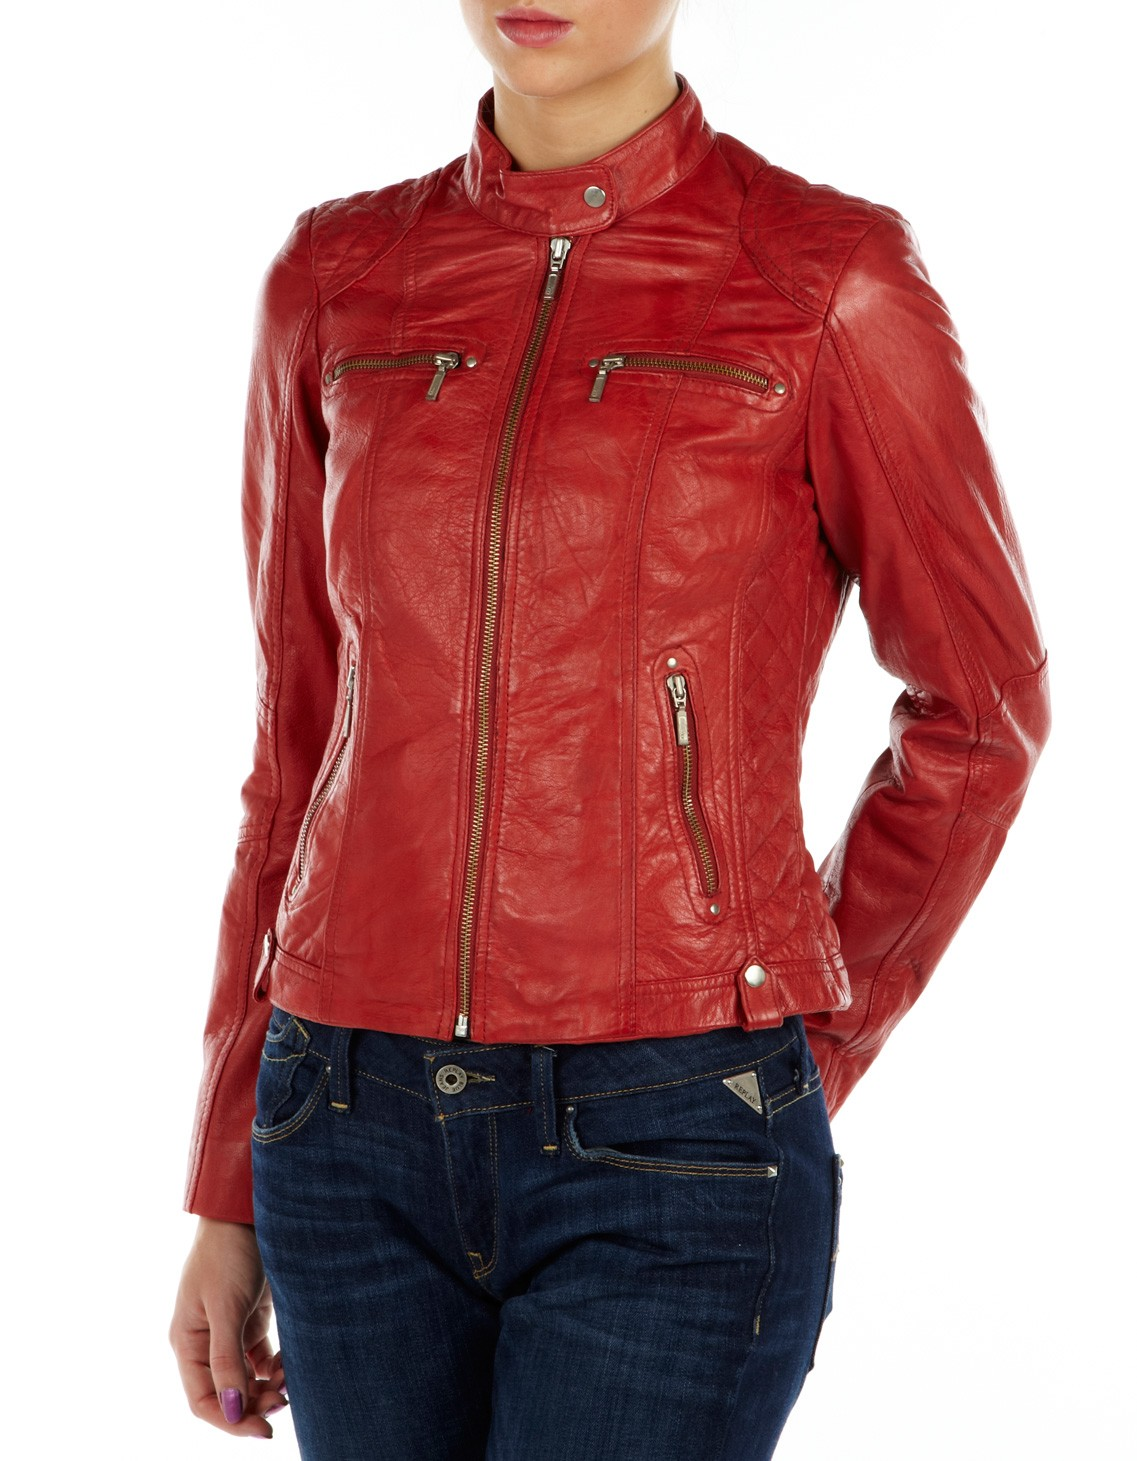 Womens Red Jacket Jacket To